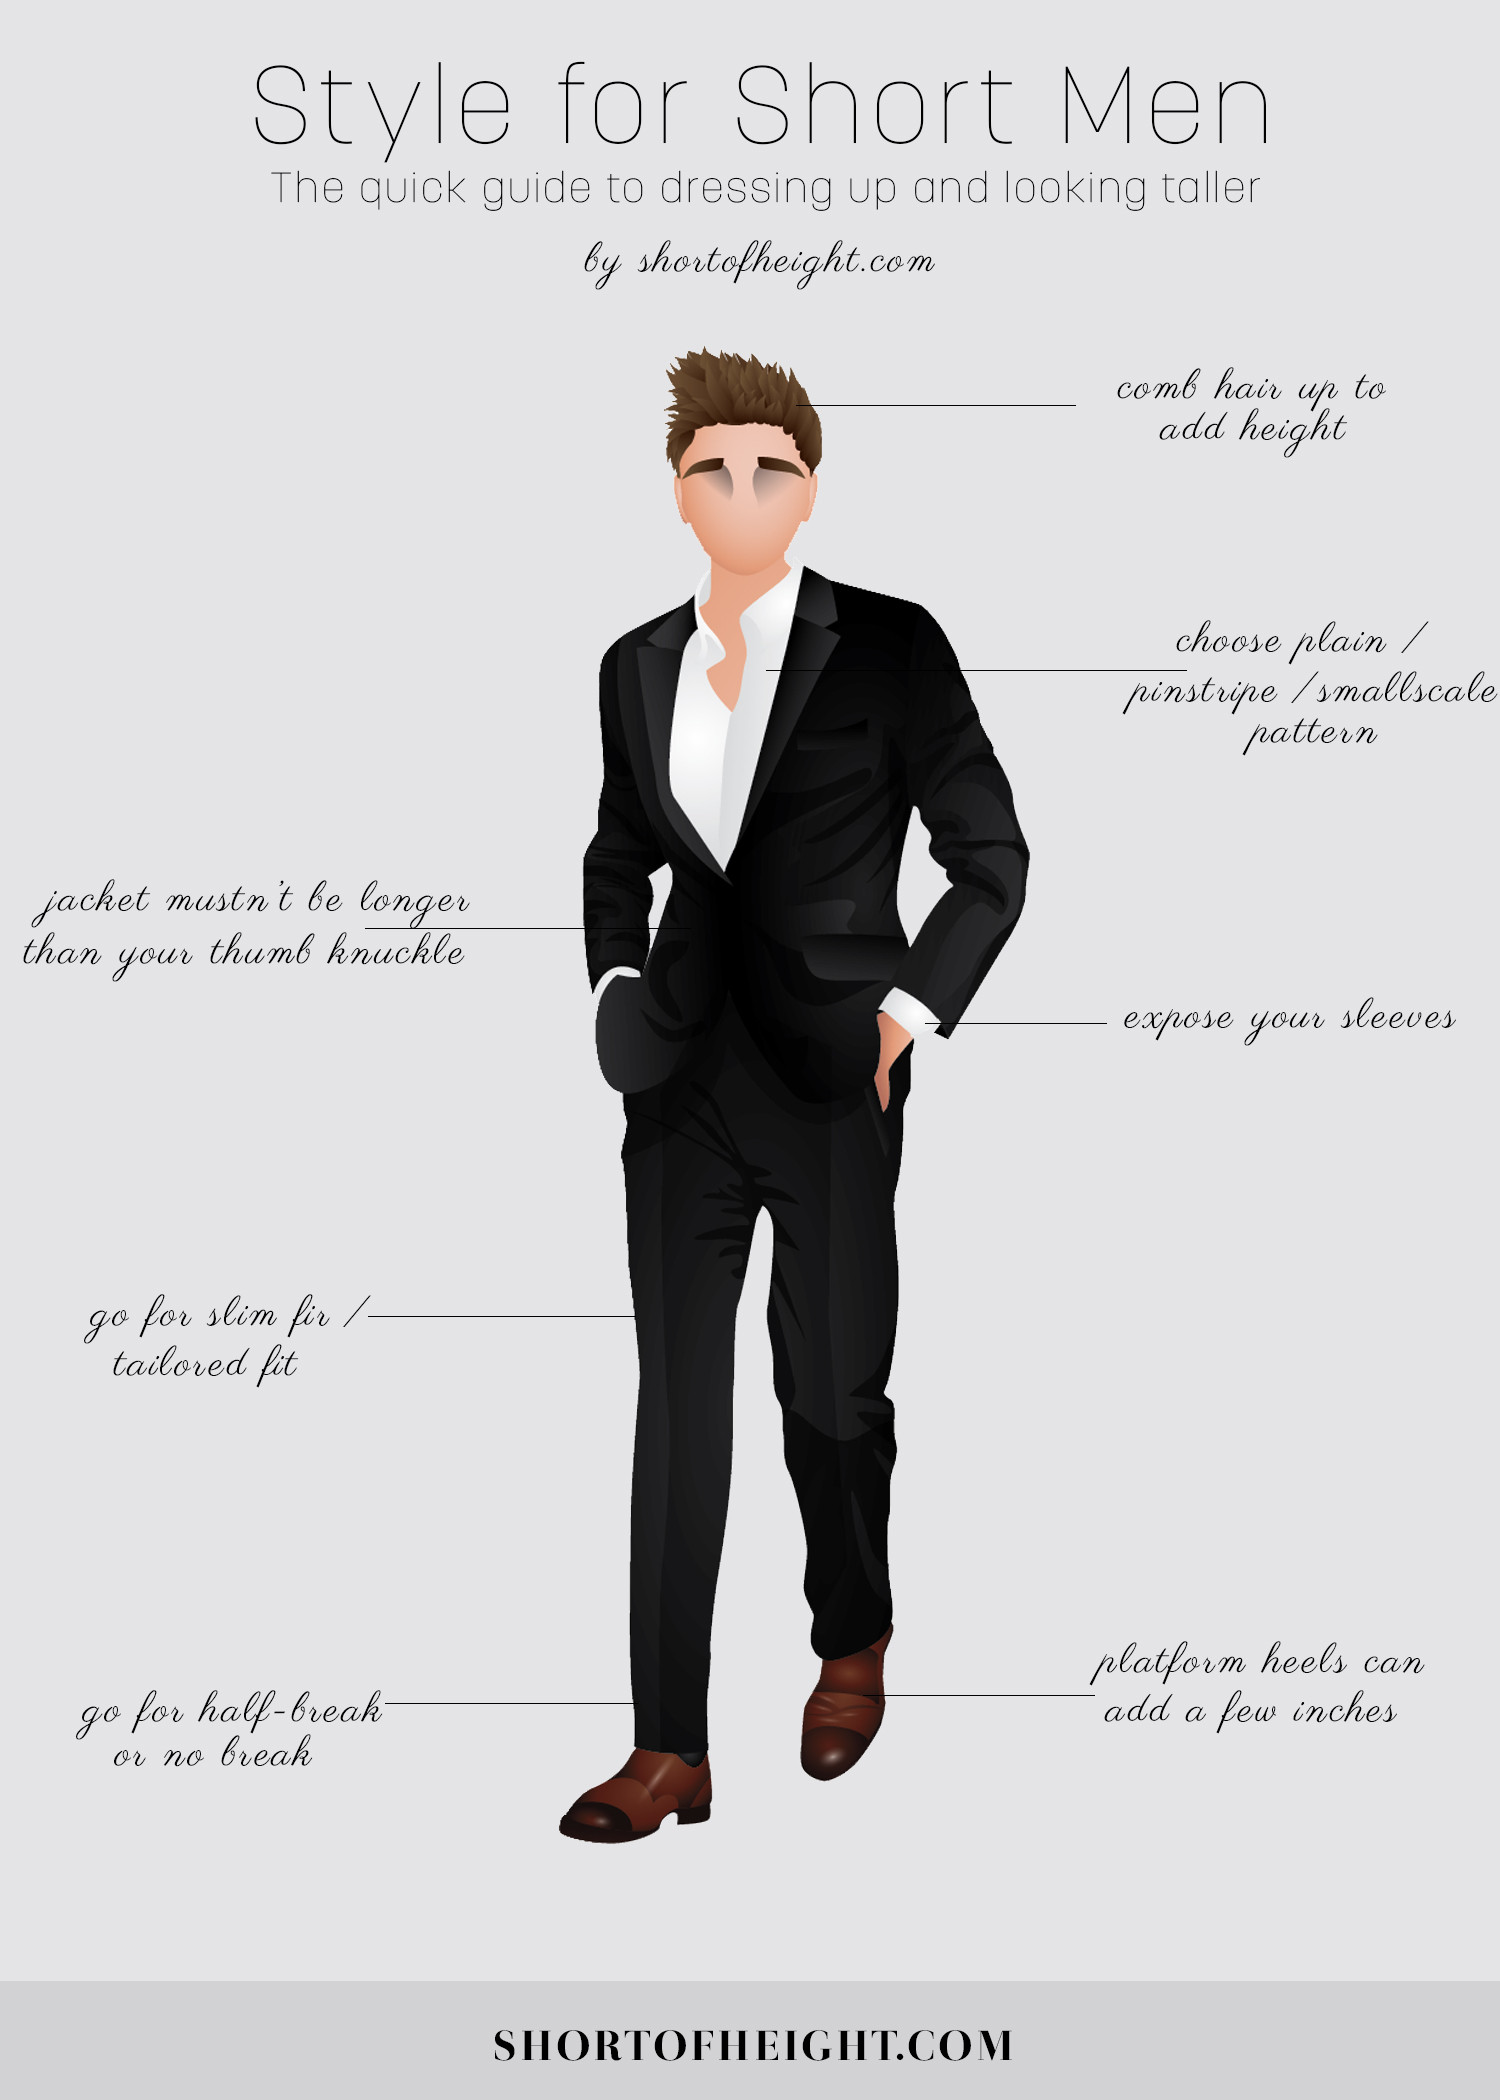 Style for Short Men Infographic  Infographic